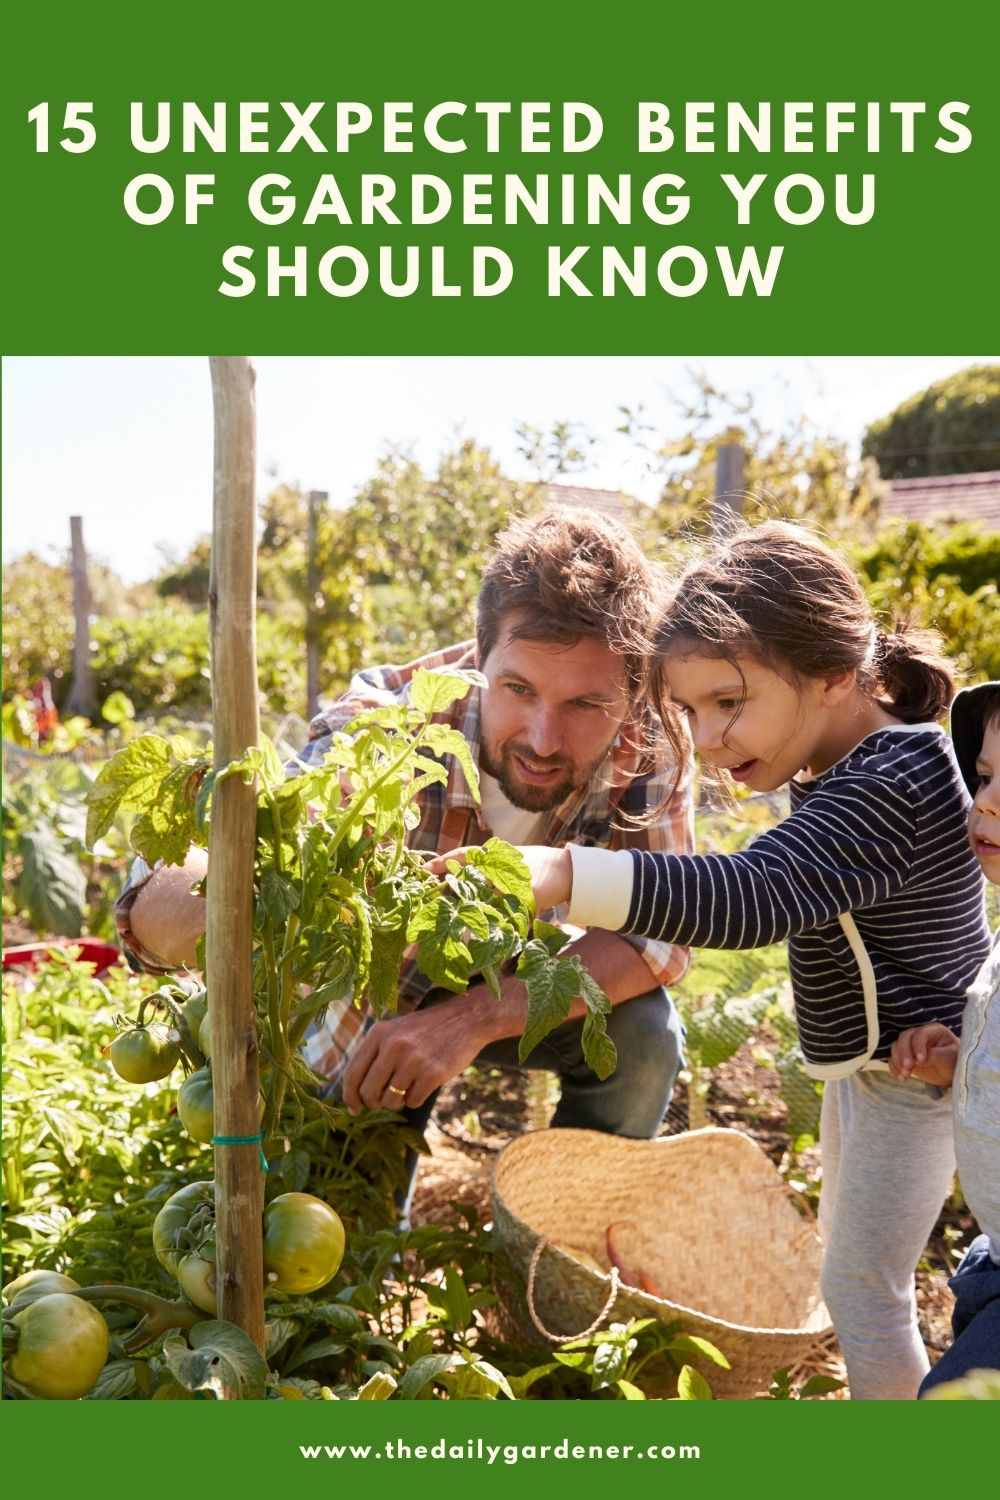 15 Unexpected Benefits of Gardening You Should Know 1